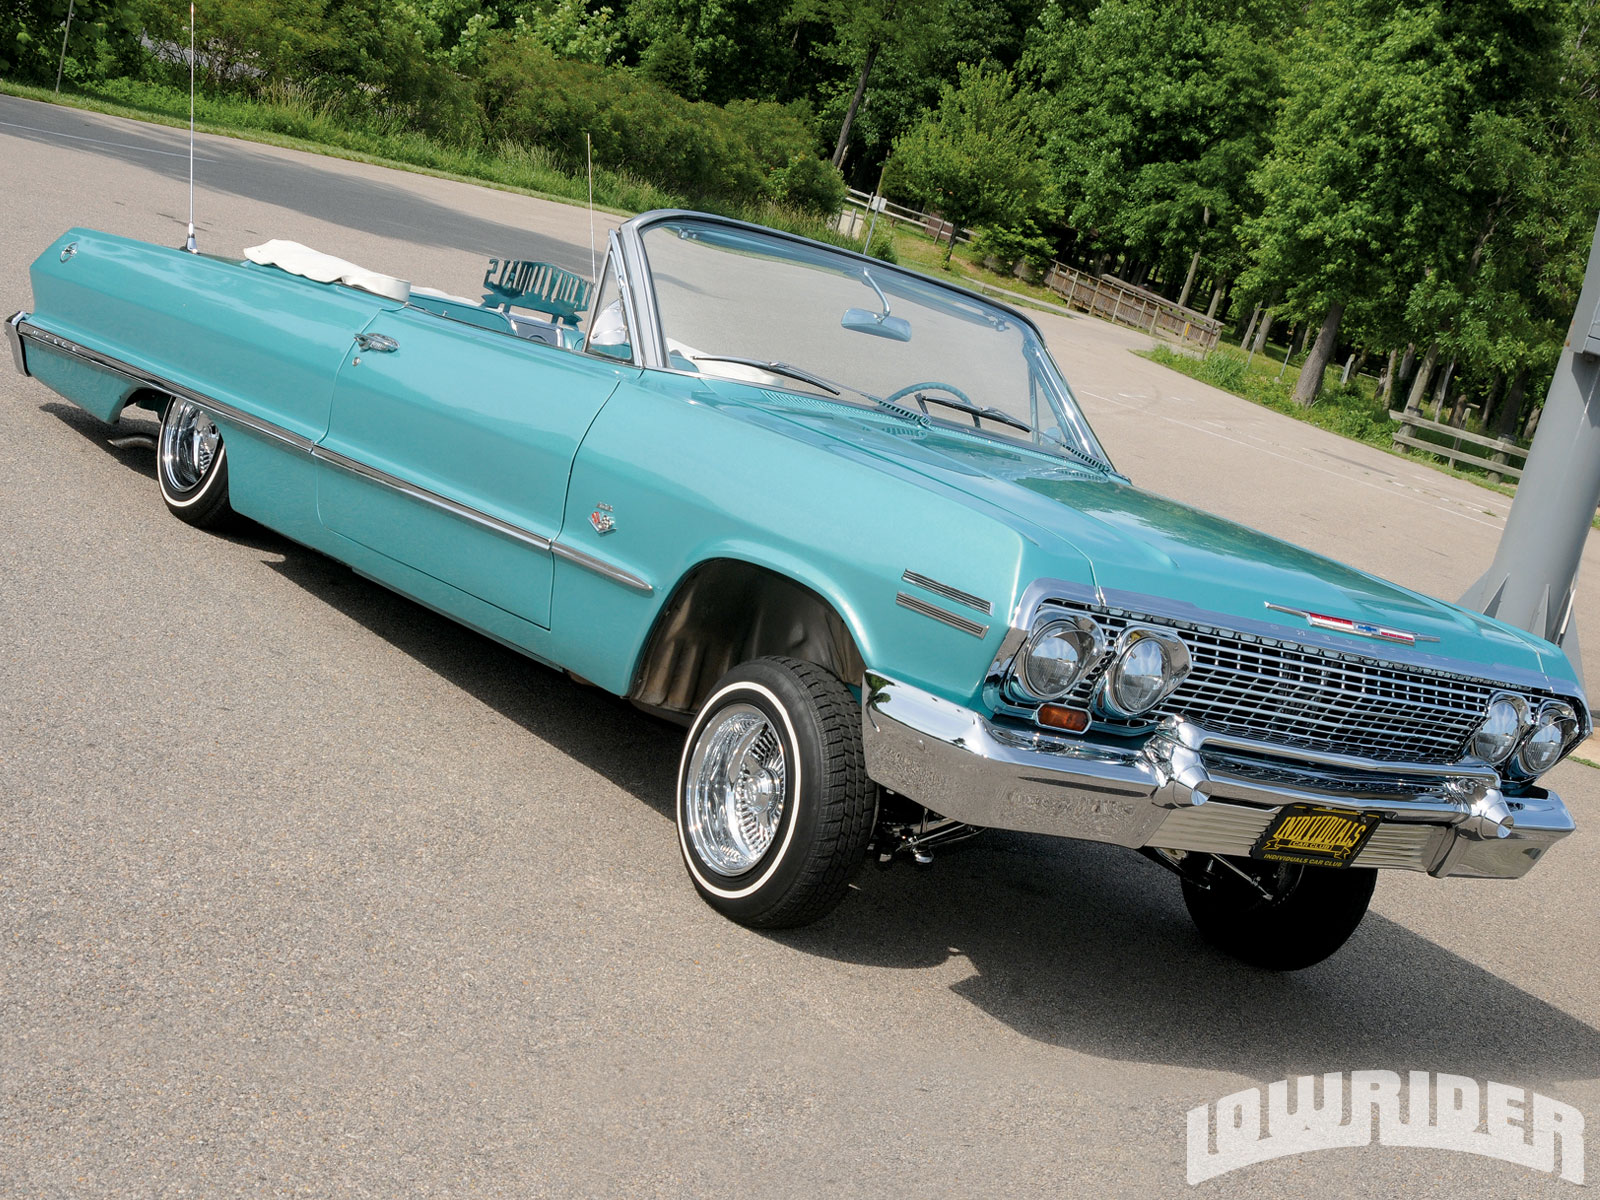 Pin 1957 Chevy Bel Air Convertible Images To Pinterest Lowrider